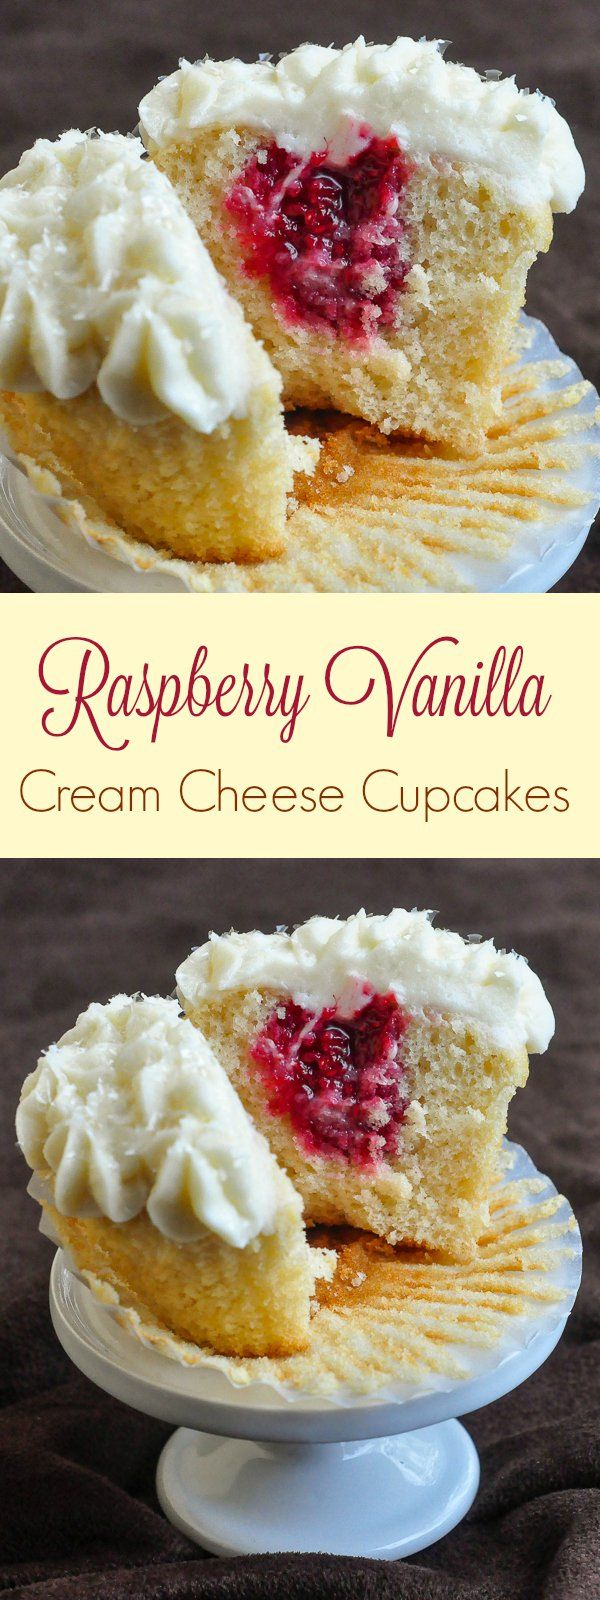 One of our most popular recipes, these raspberry vanilla cream cheese cupcakes are moist & delicious with a tart filling and luscious cream cheese frosting.                                                                                                                                                     More